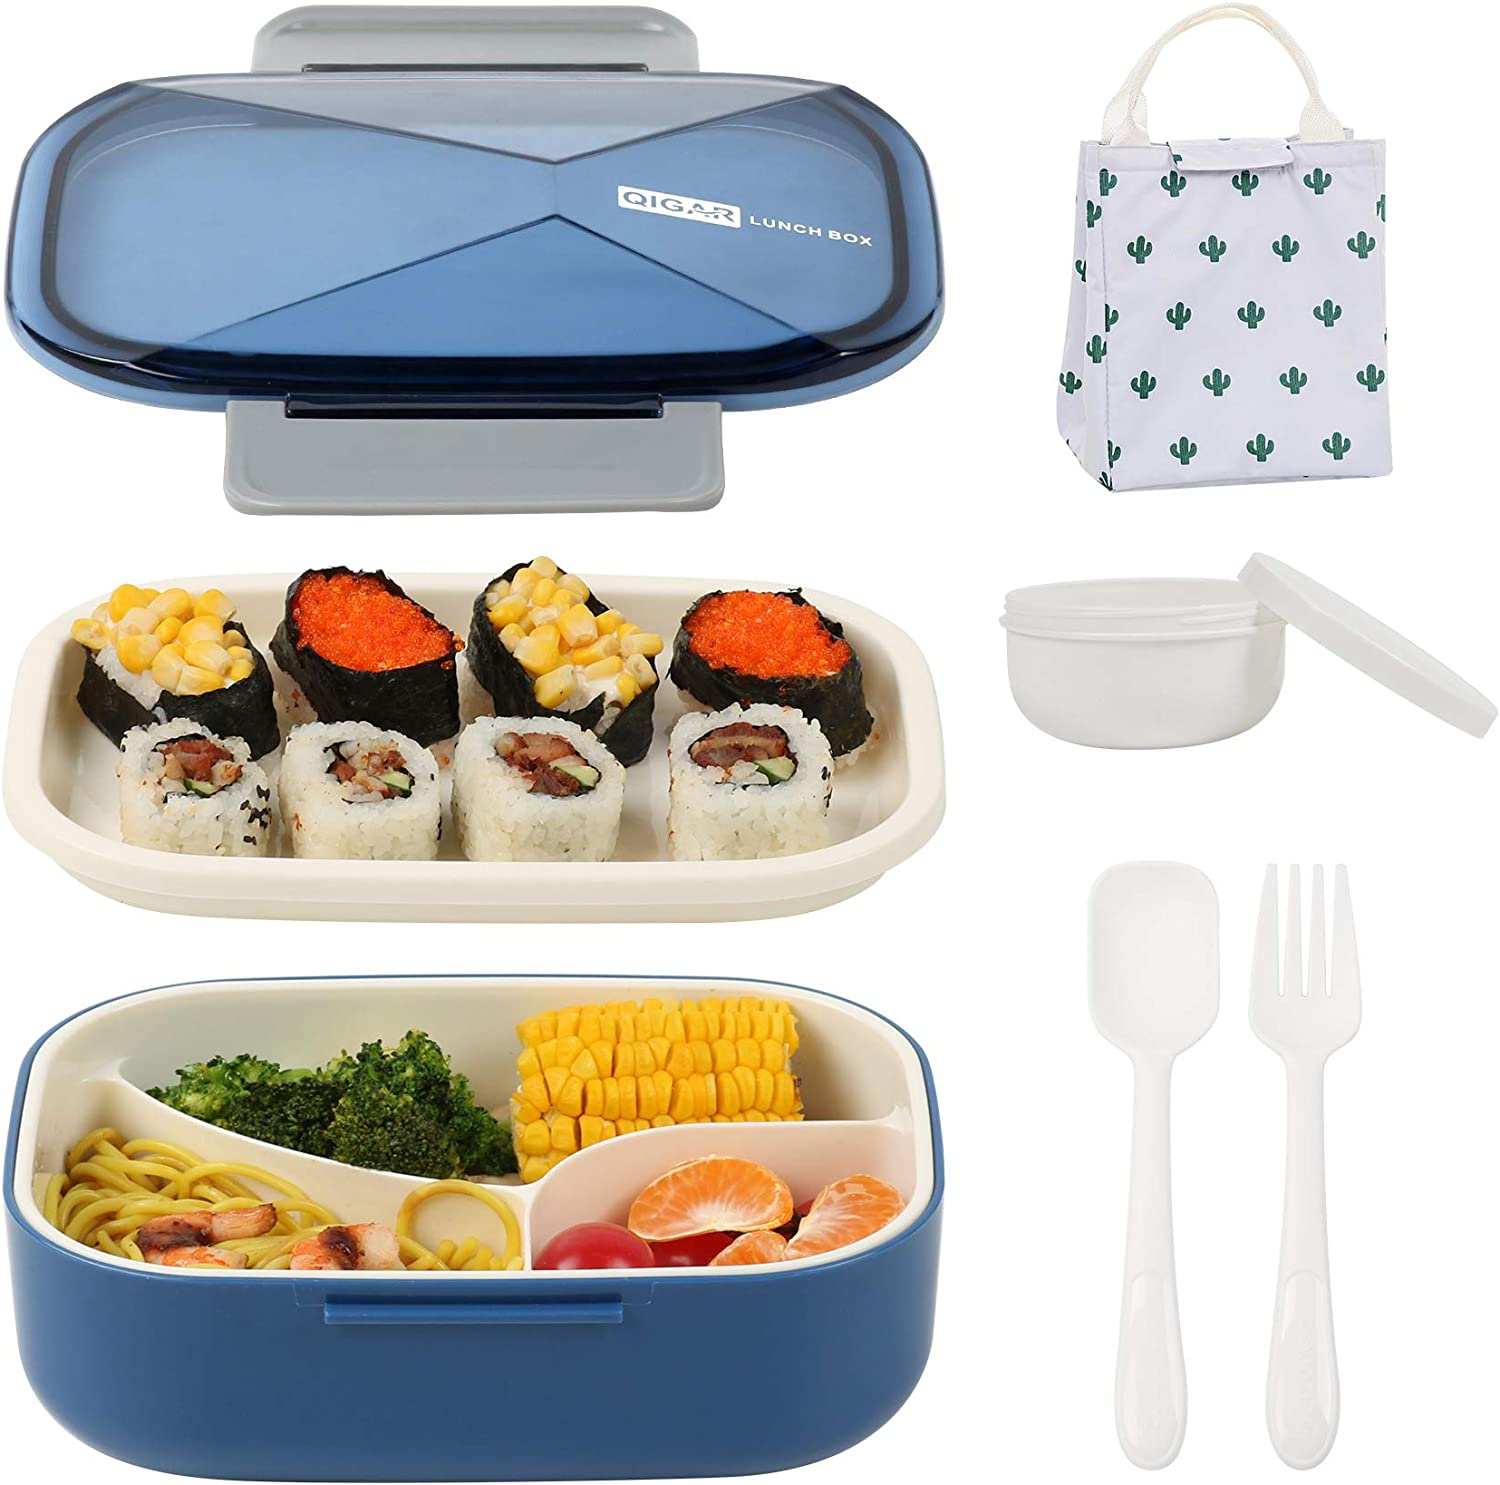 Bento Baltimore Mall Boxes for Adults and Kids with Super popular specialty store Bag L Capacity Large Lunch